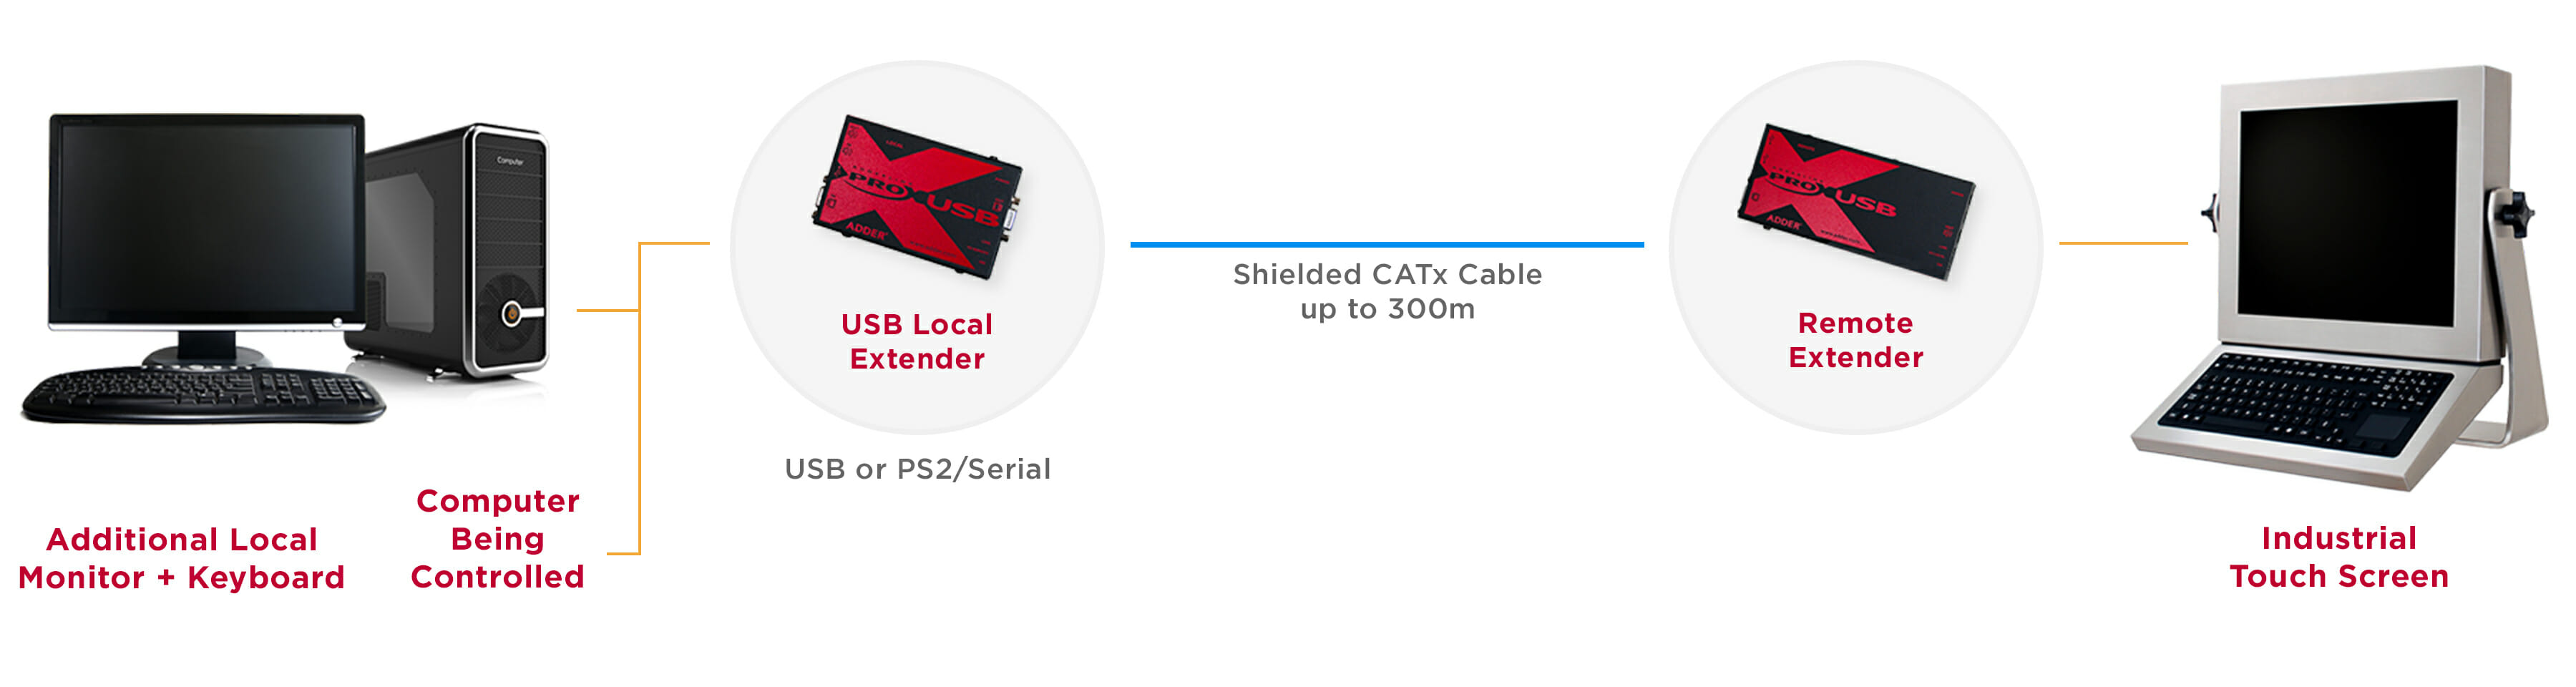 Industrial KVM Extender system diagram for 300 m distance over shielded CATx cable